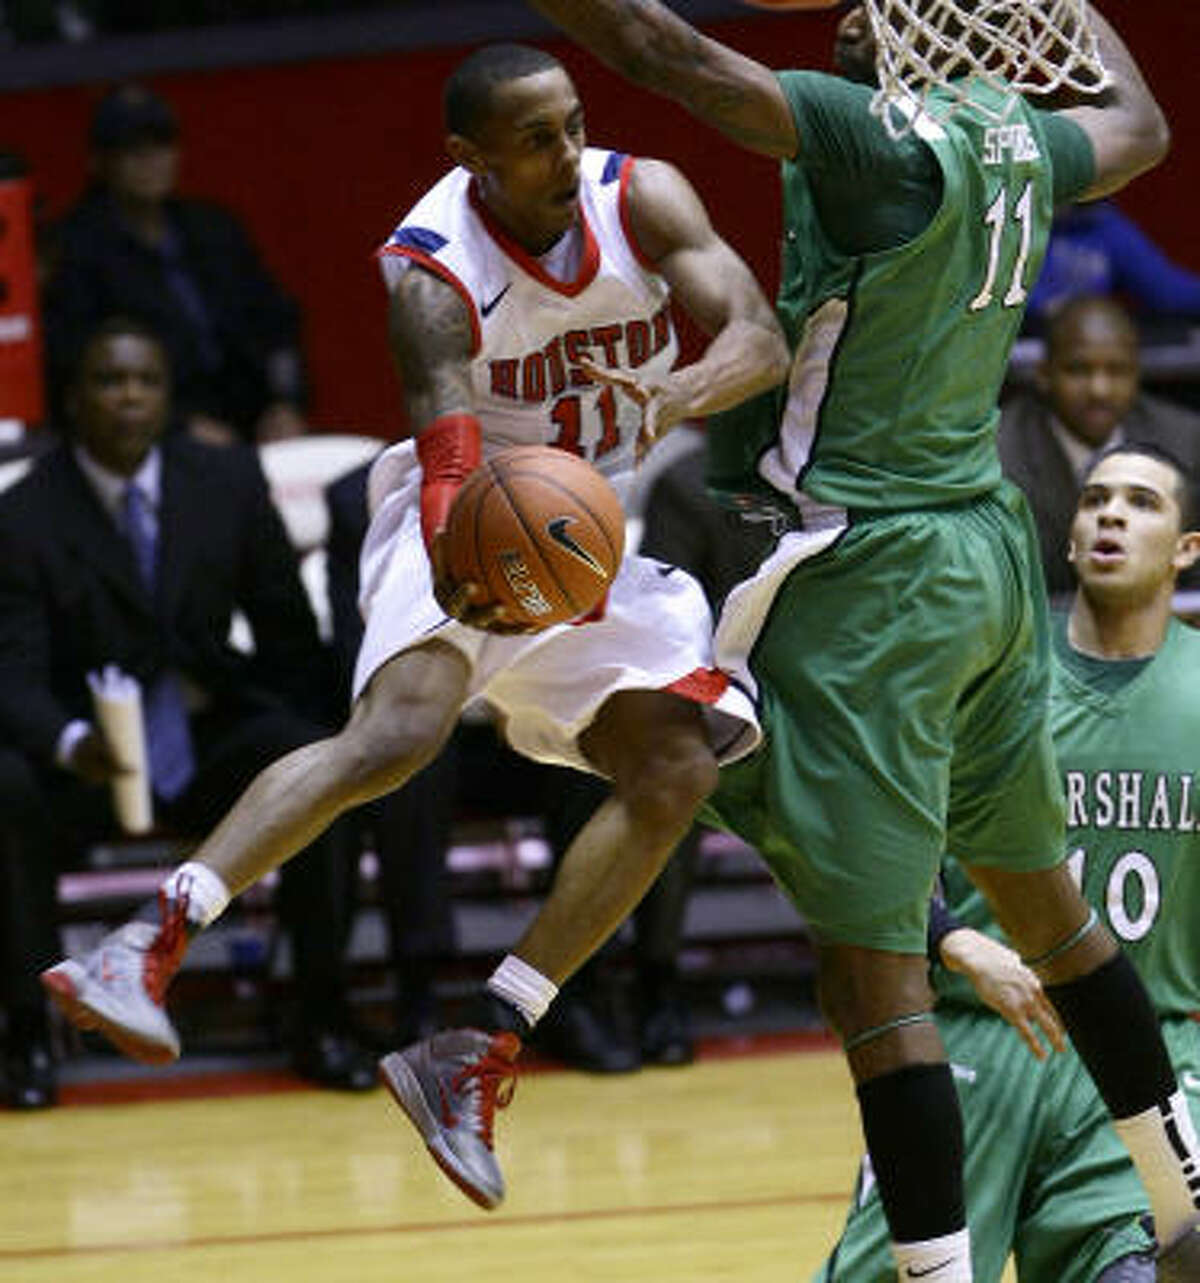 UH guard Darian Thibodeaux looks to make a wrap-around pass past Marshall center Nigel Spikes in the first half.